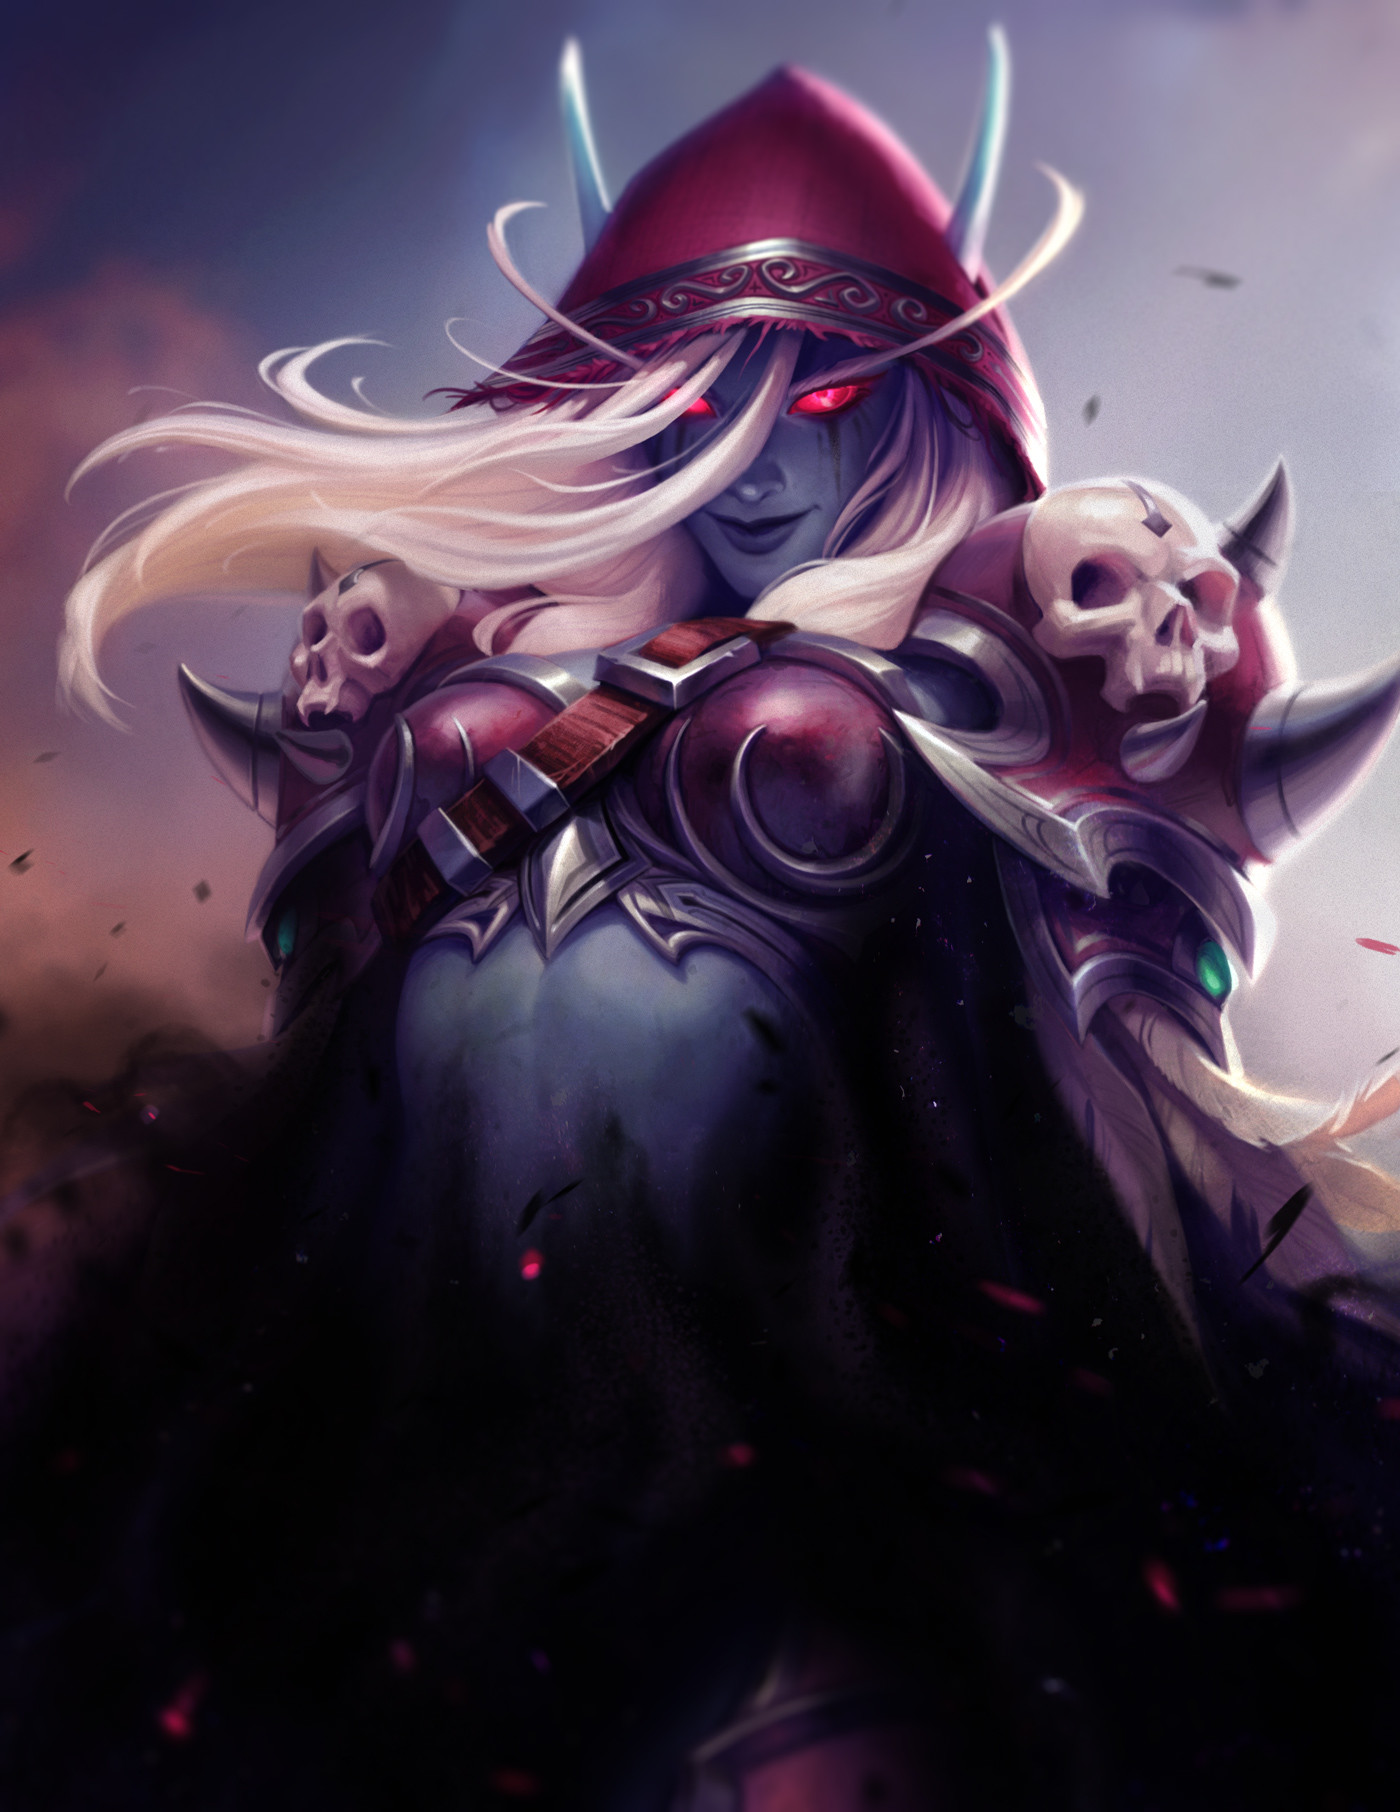 by Jessica Oyhenart - Warcraft 3: Reign of Chaos Арт